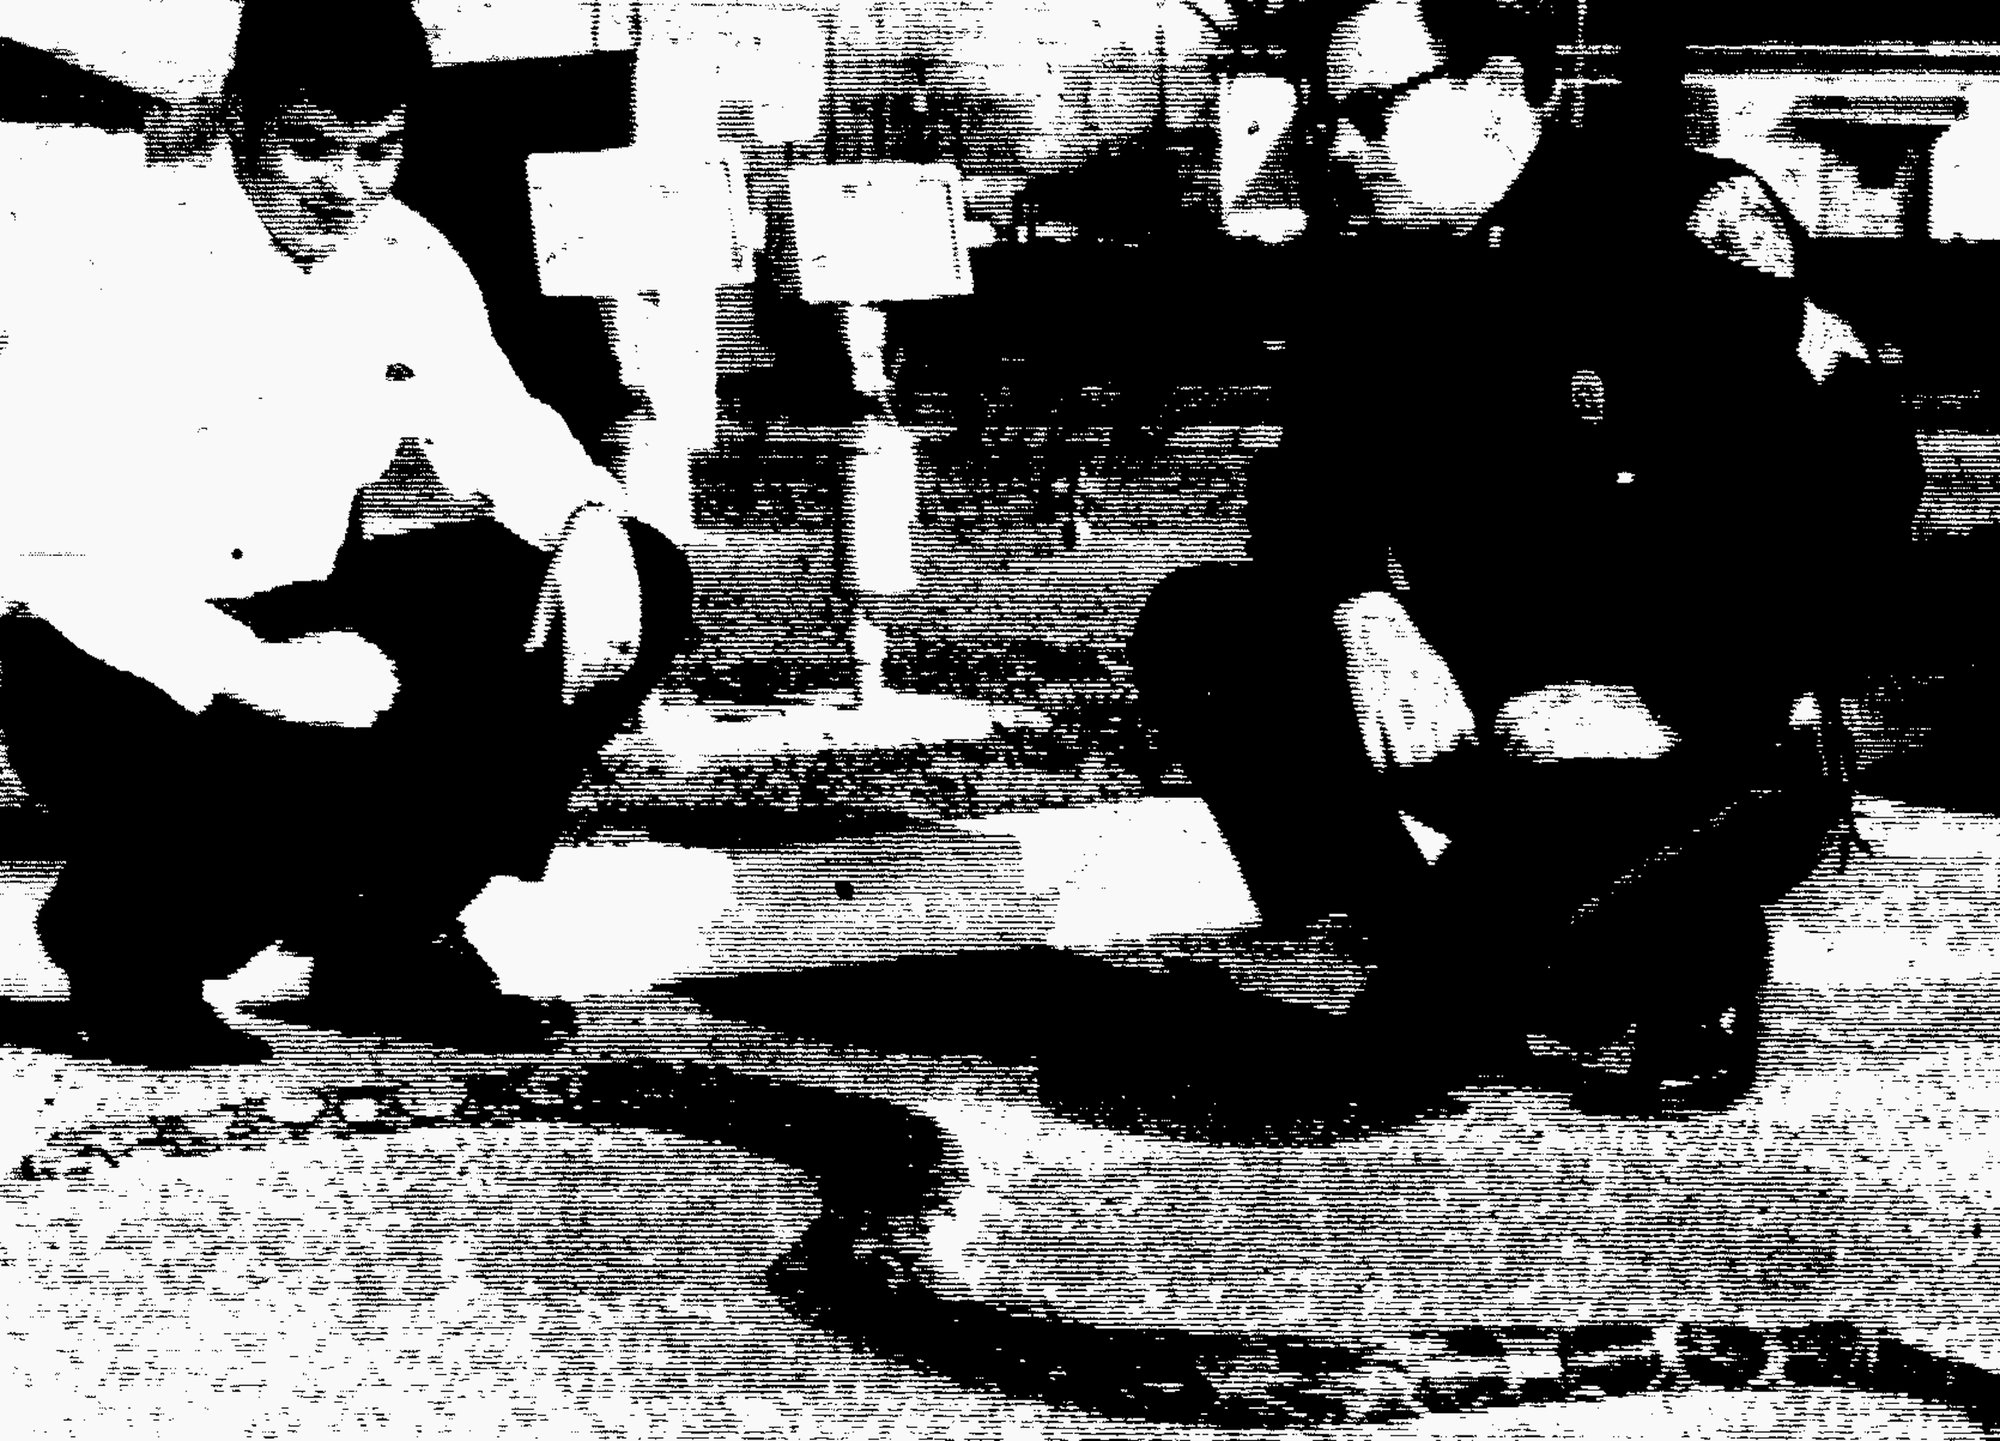 1969 - A 9-foot boa constrictor, considered a tropical creature, was found dead on Artillery Drive by Sumter Police Department officers Lt. Maxie Connor and Sgt. W. D. Jenkins. Neal Compton and Sgt. Jenkins are seen looking at the large snake. Officers haven't been able to determine how or why the snake was living in the Sumter area.